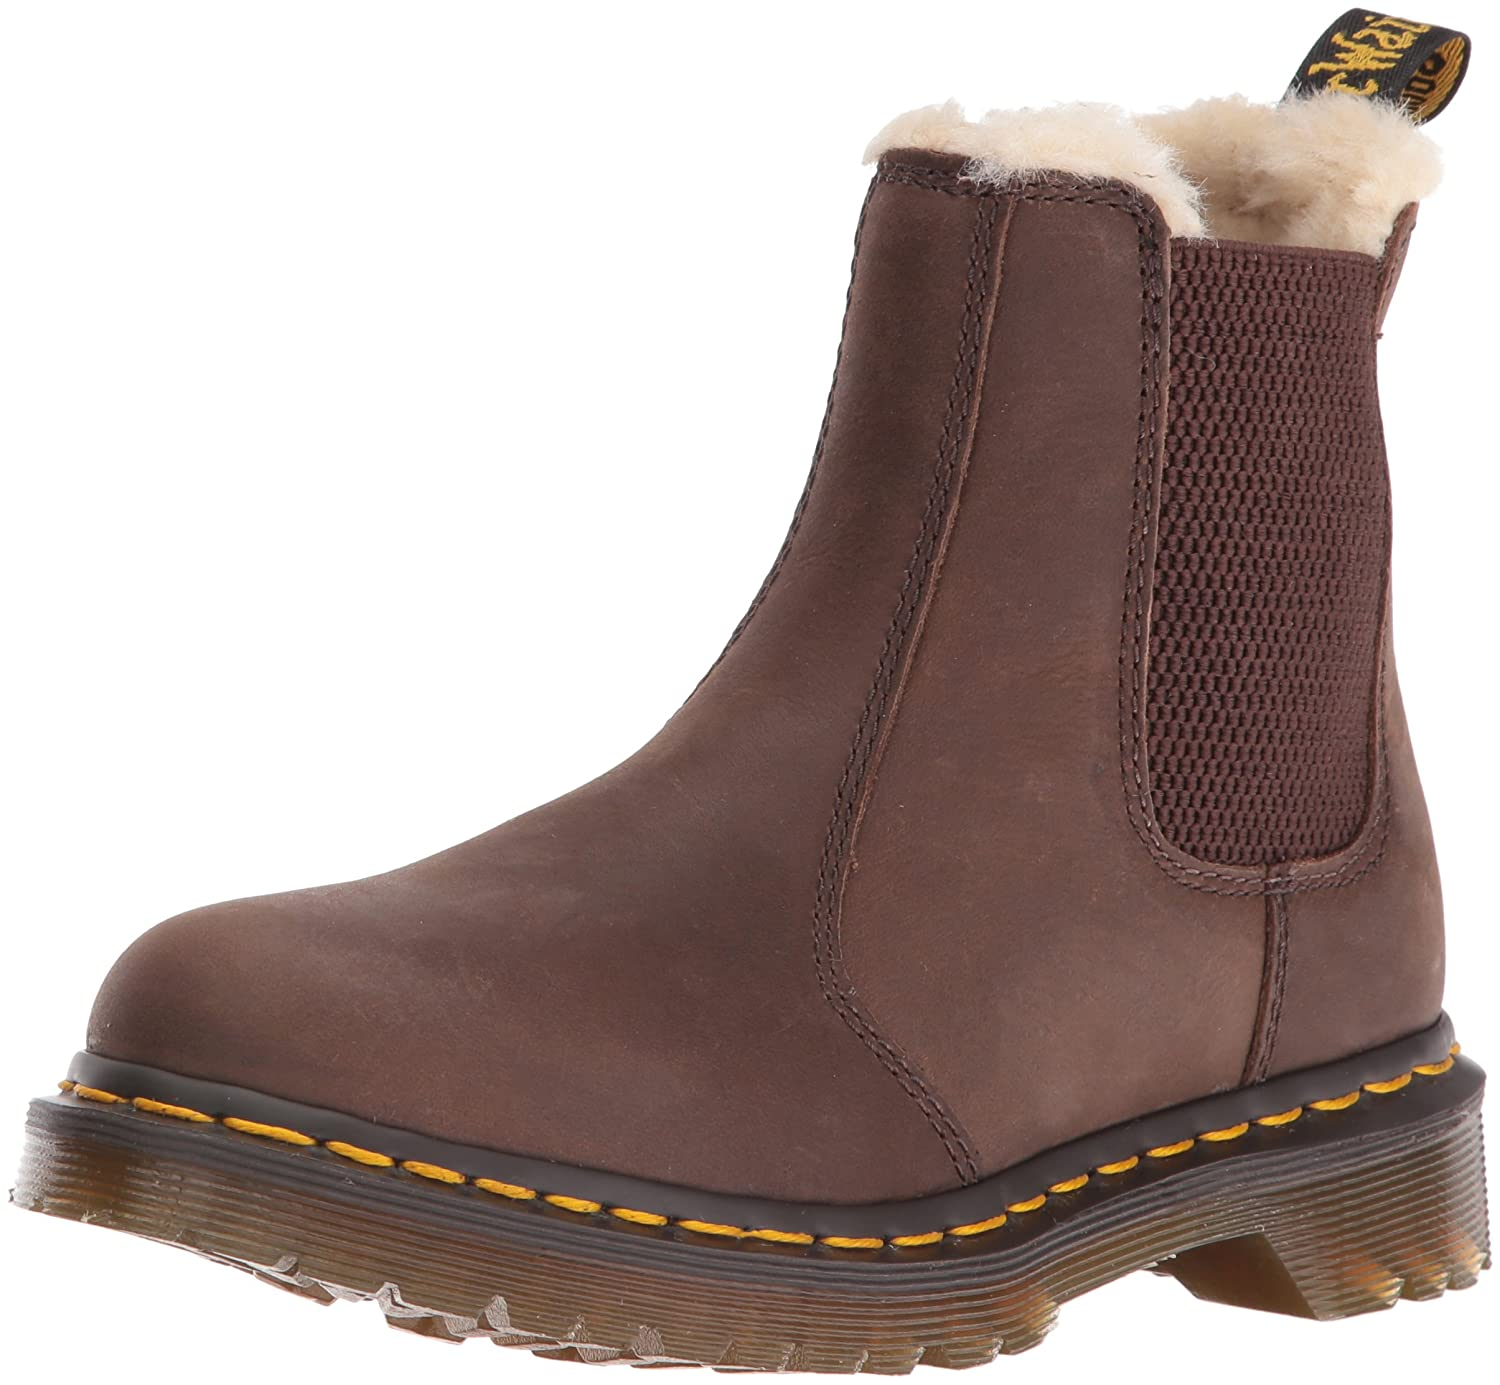 Dr. Martens Women's Leonore Burnished Wyoming Leather Fashion Boot B01B271PI0 7 Medium UK (9 US)|Dark Brown Grizzly